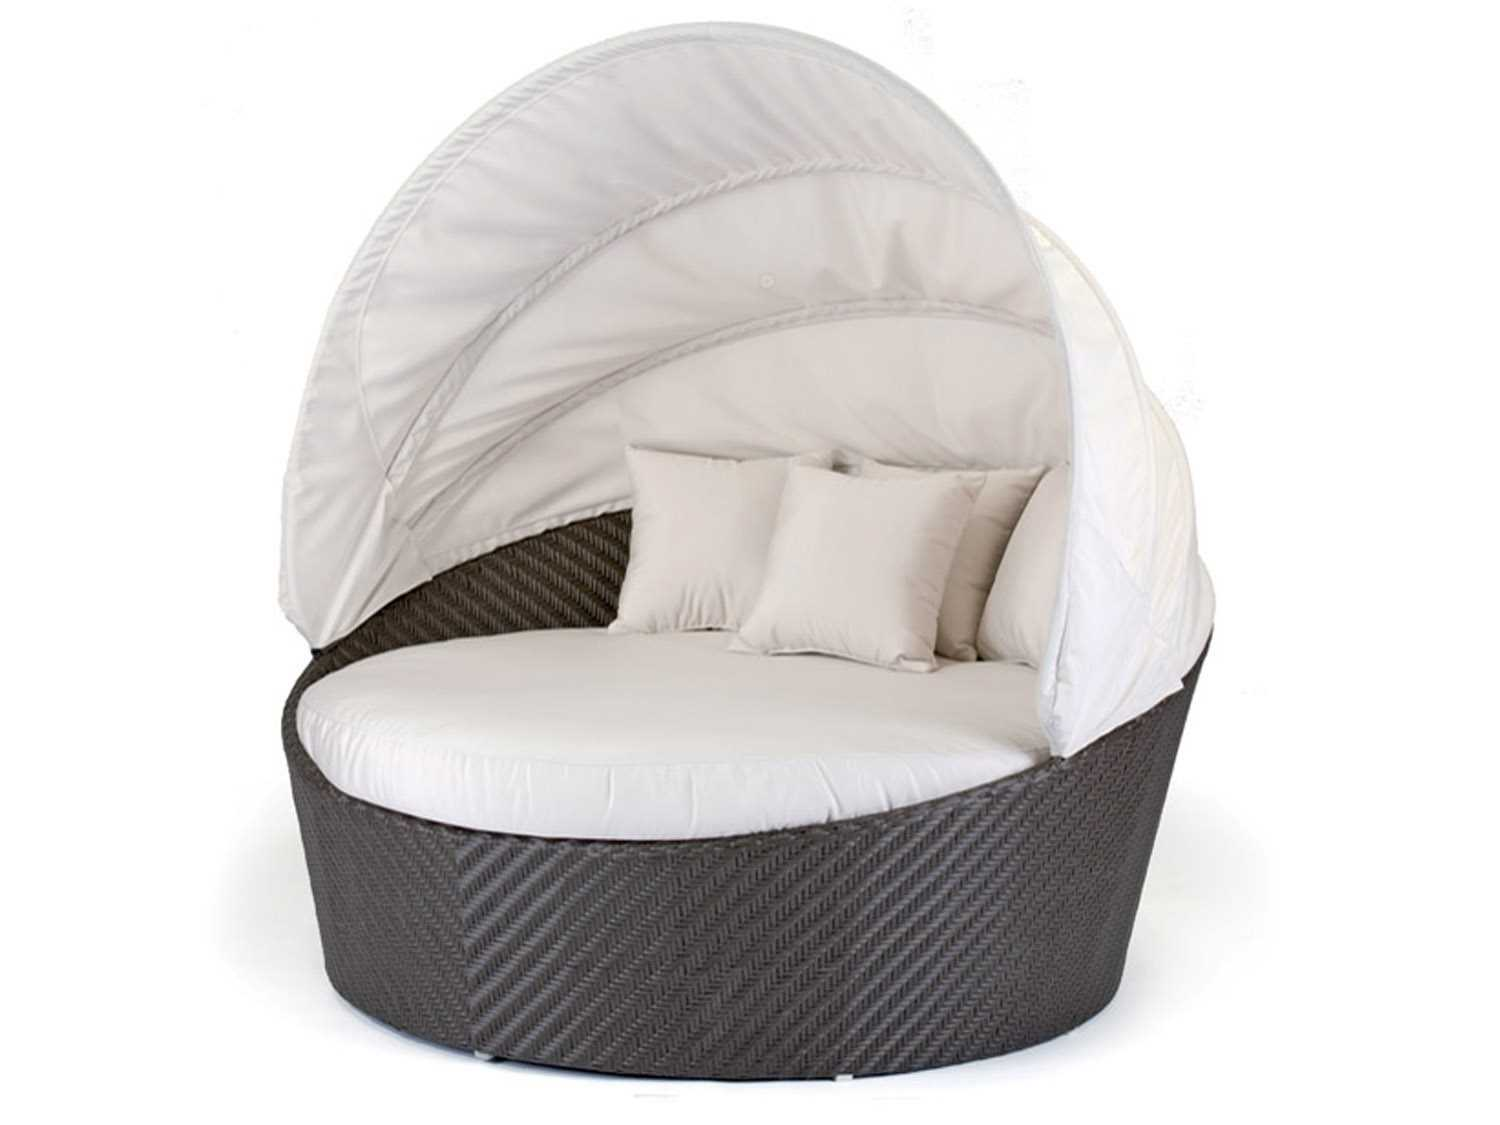 Caluco Dijon Wicker Round Daybed With Sunbrella 5404 Interiors Inside Ideas Interiors design about Everything [magnanprojects.com]